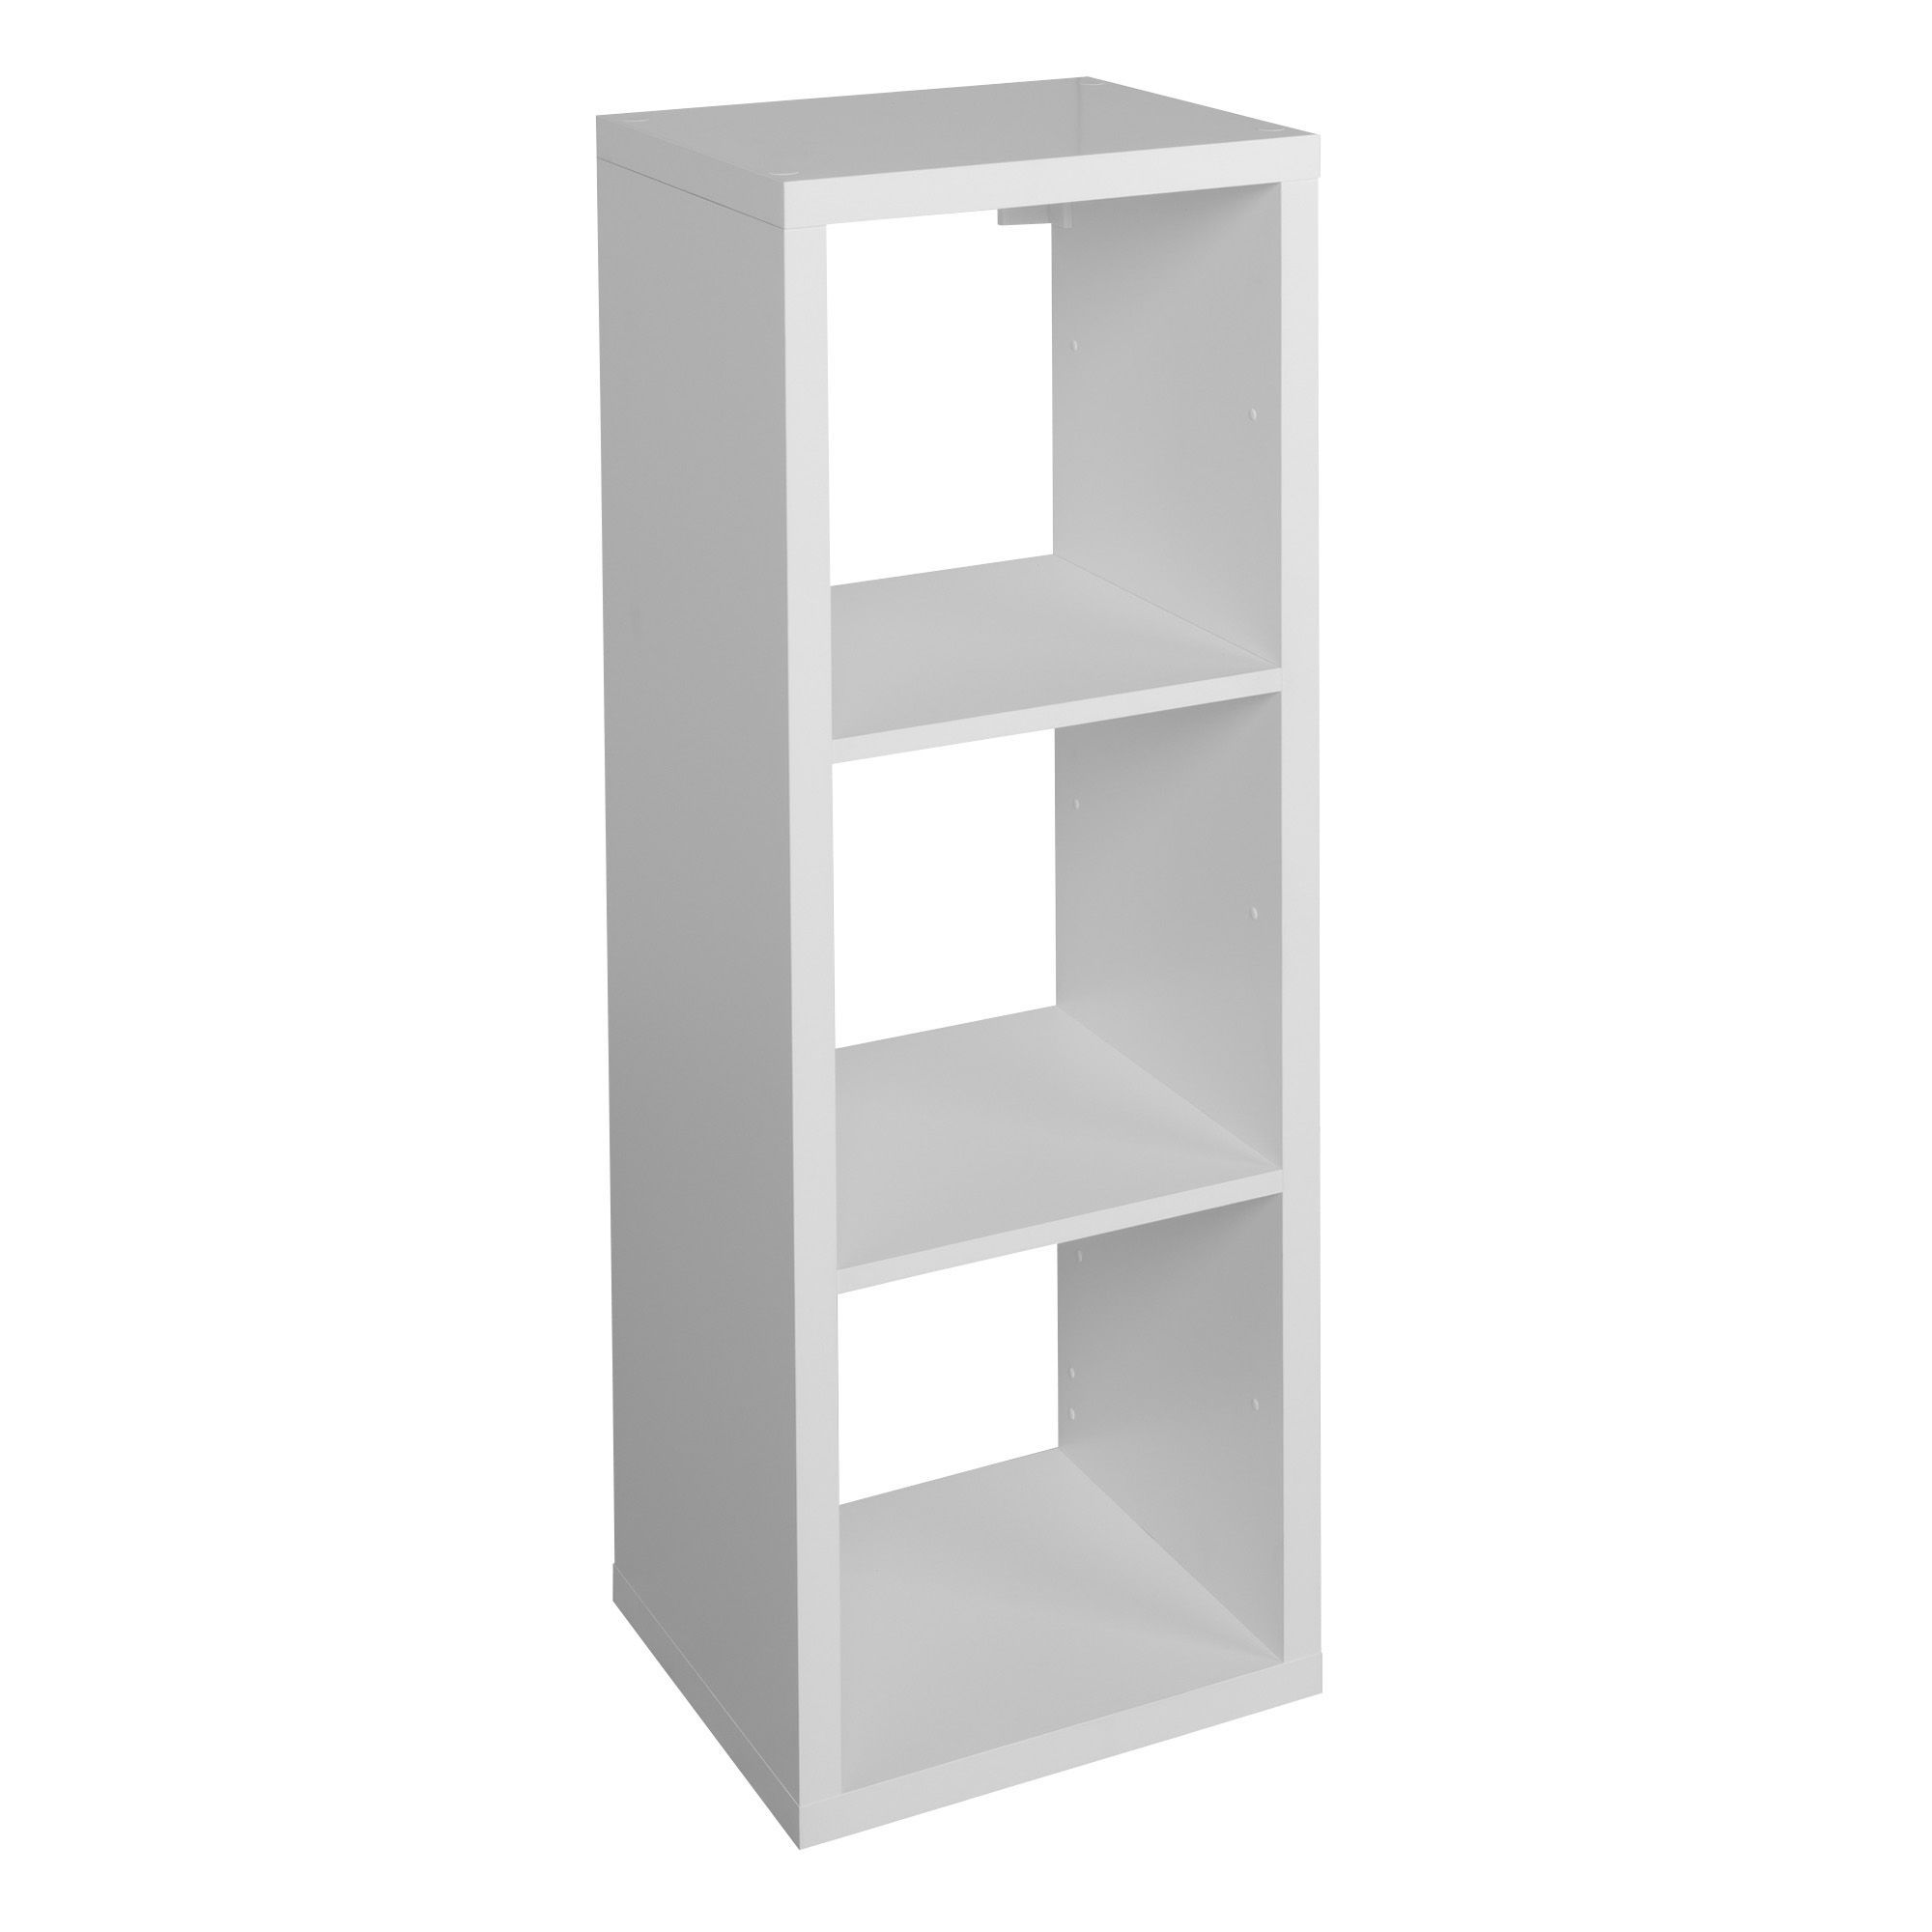 Form Mixxit White 3 Cube Shelving Unit (H)1080mm (W)390mm | Departments | DIY at Bu0026Q  sc 1 st  Bu0026Q & Form Mixxit White 3 Cube Shelving Unit (H)1080mm (W)390mm ...